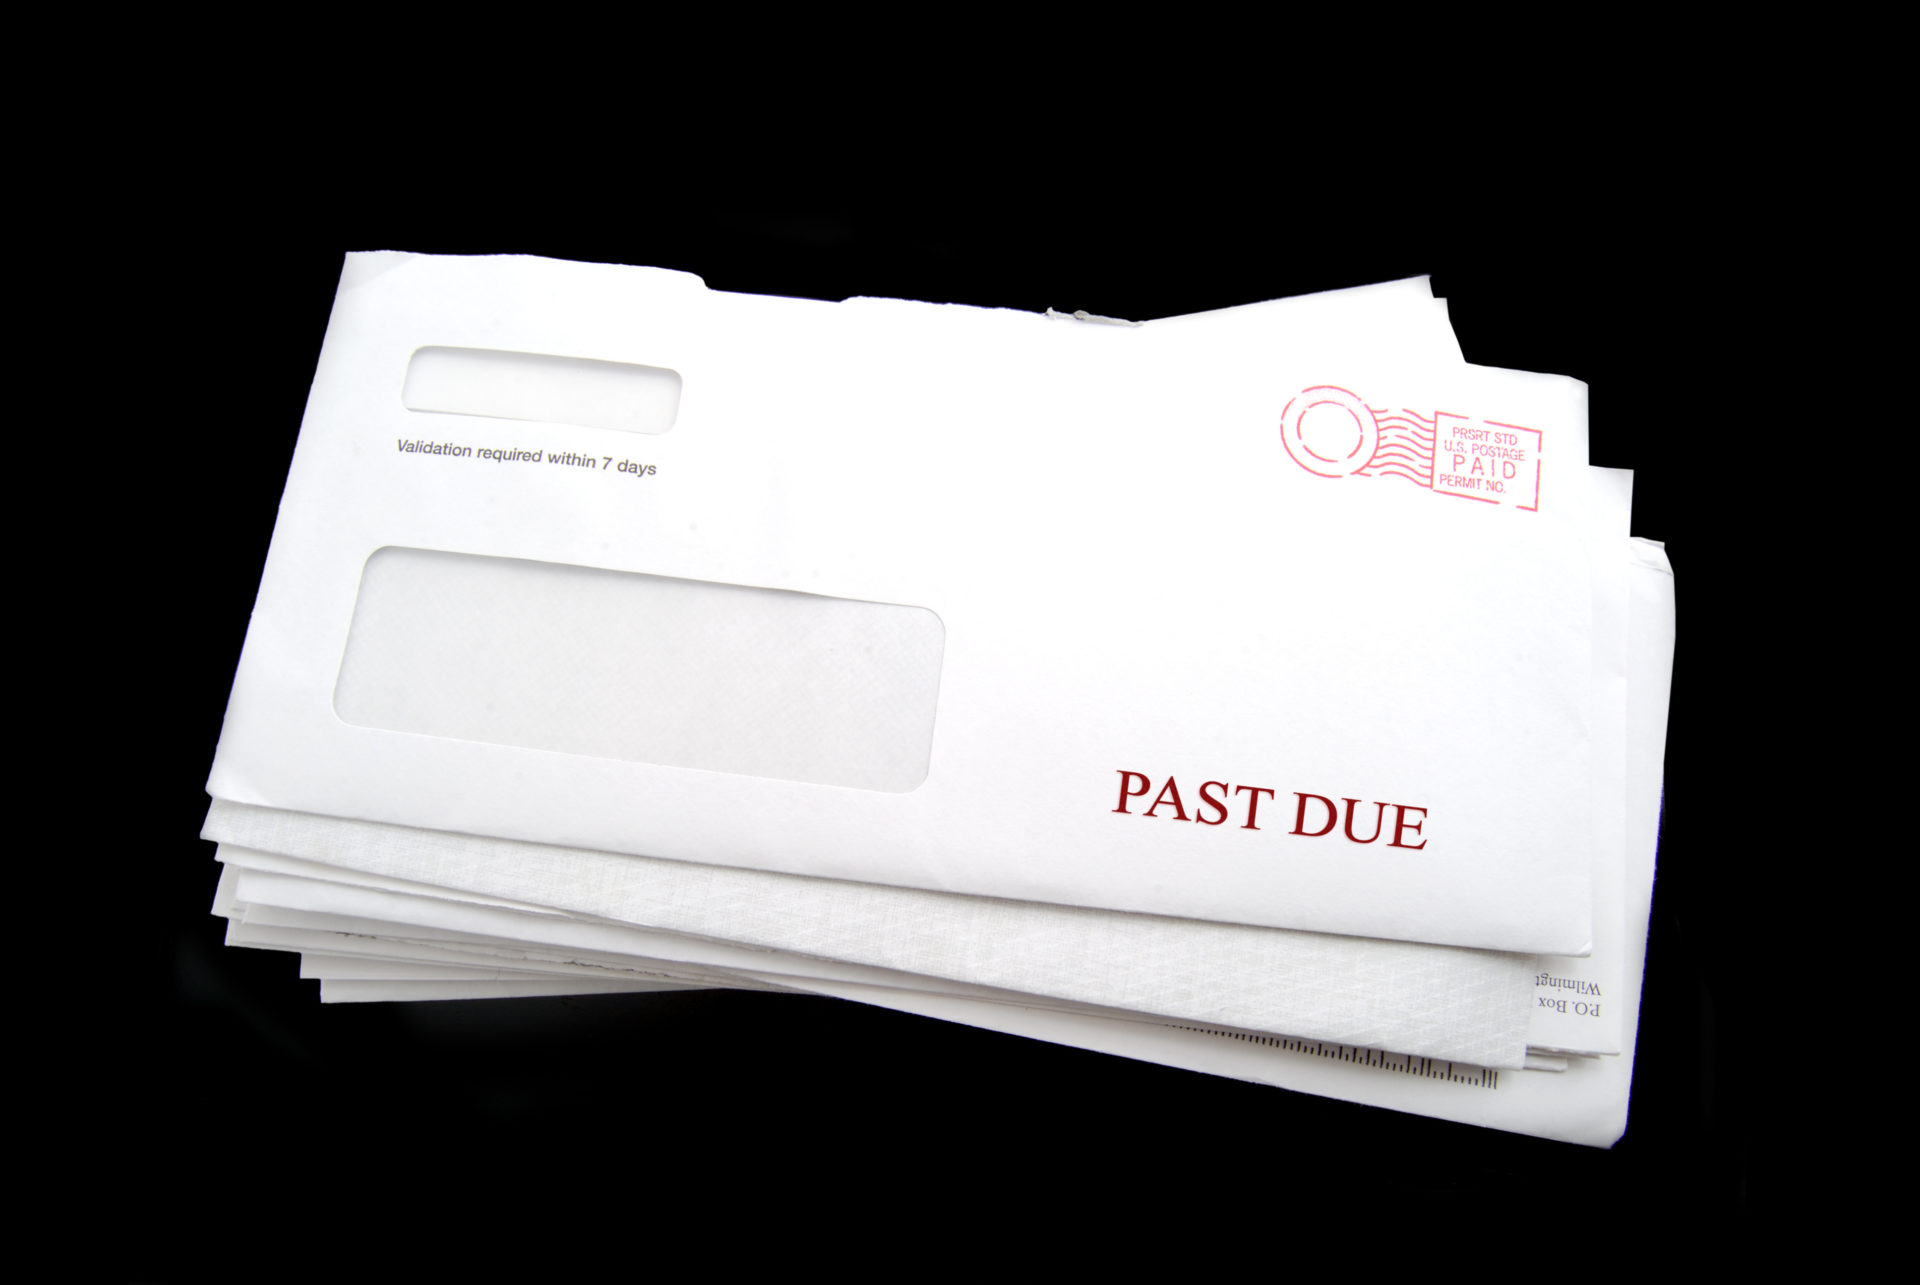 Debt Collection - Transactional Mail